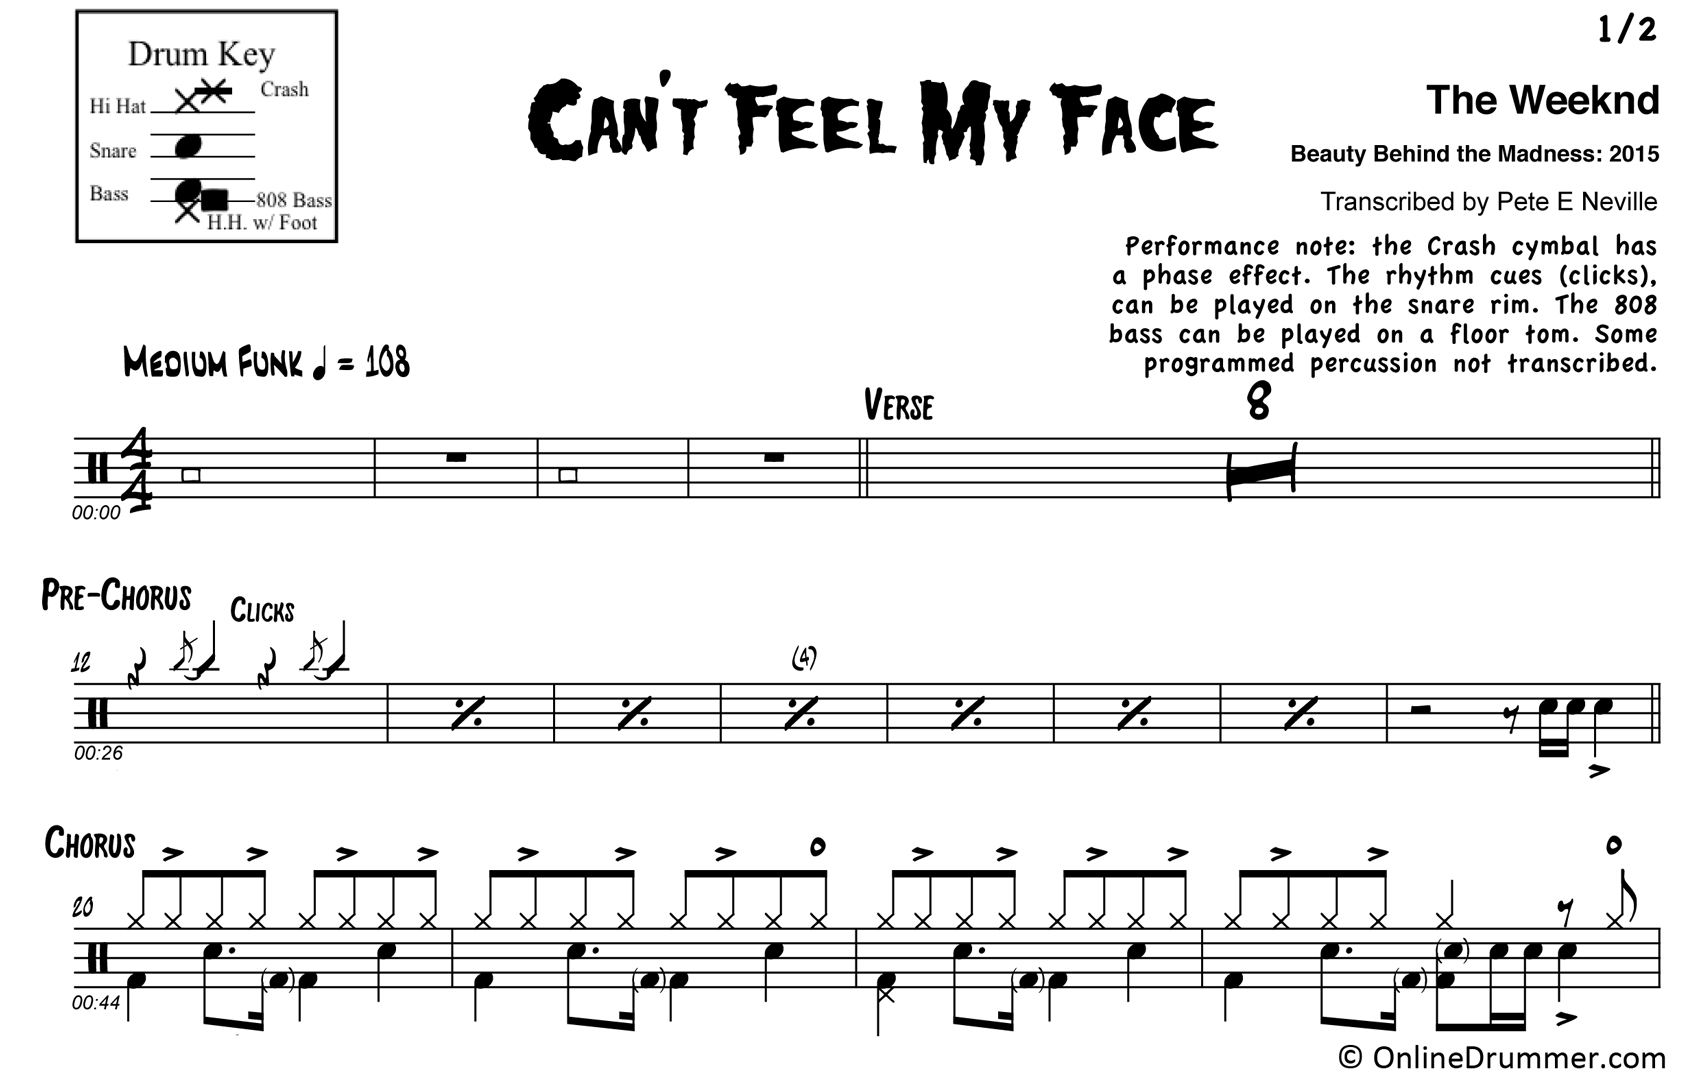 Can't Feel My Face - The Weeknd - Drum Sheet Music